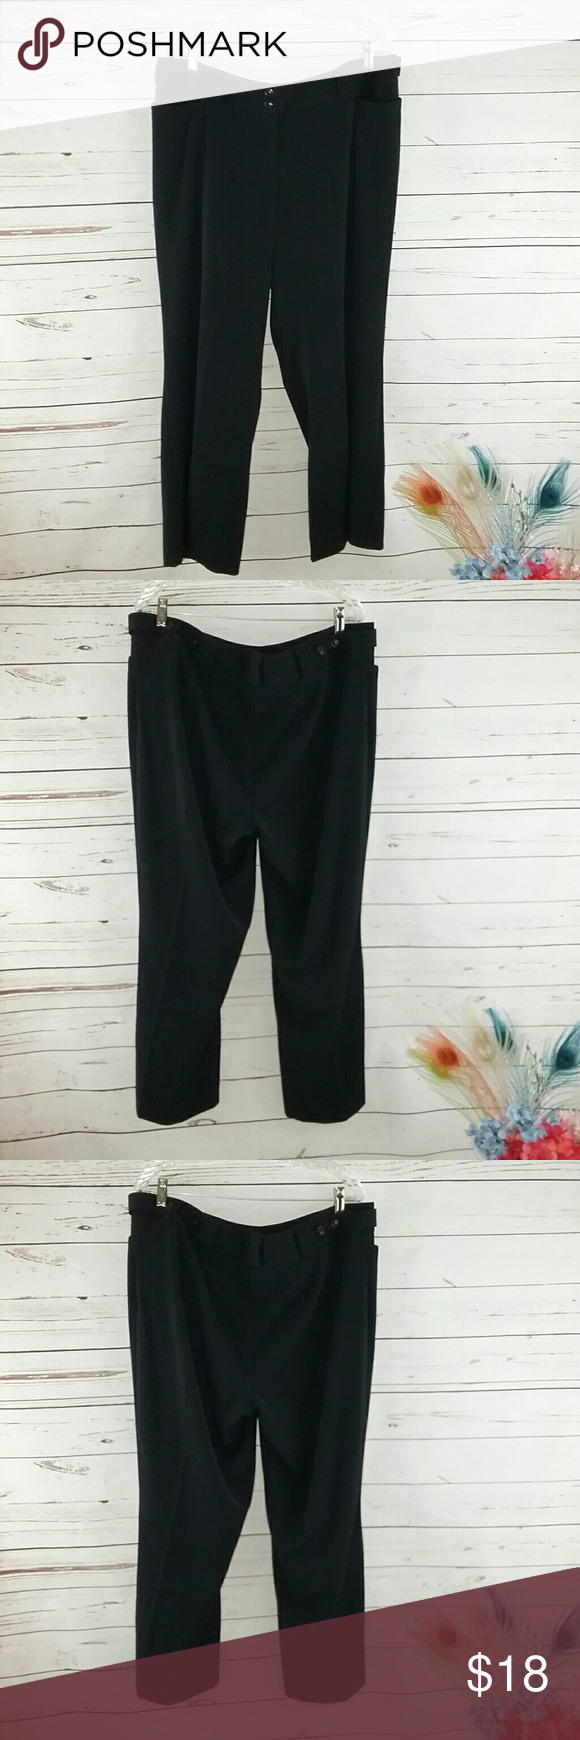 New Lane Bryant Black Ladies Slacks Pants Sz 18 This is a pair of ladies Lane Bryant new with tags black trouser career pants. They have front flap Pockets belt loops and front zip. They are sold new with tags they are 64% polyester, 32% rayon, and 4% spandex. They are machine washable Lane Bryant Pants Trousers